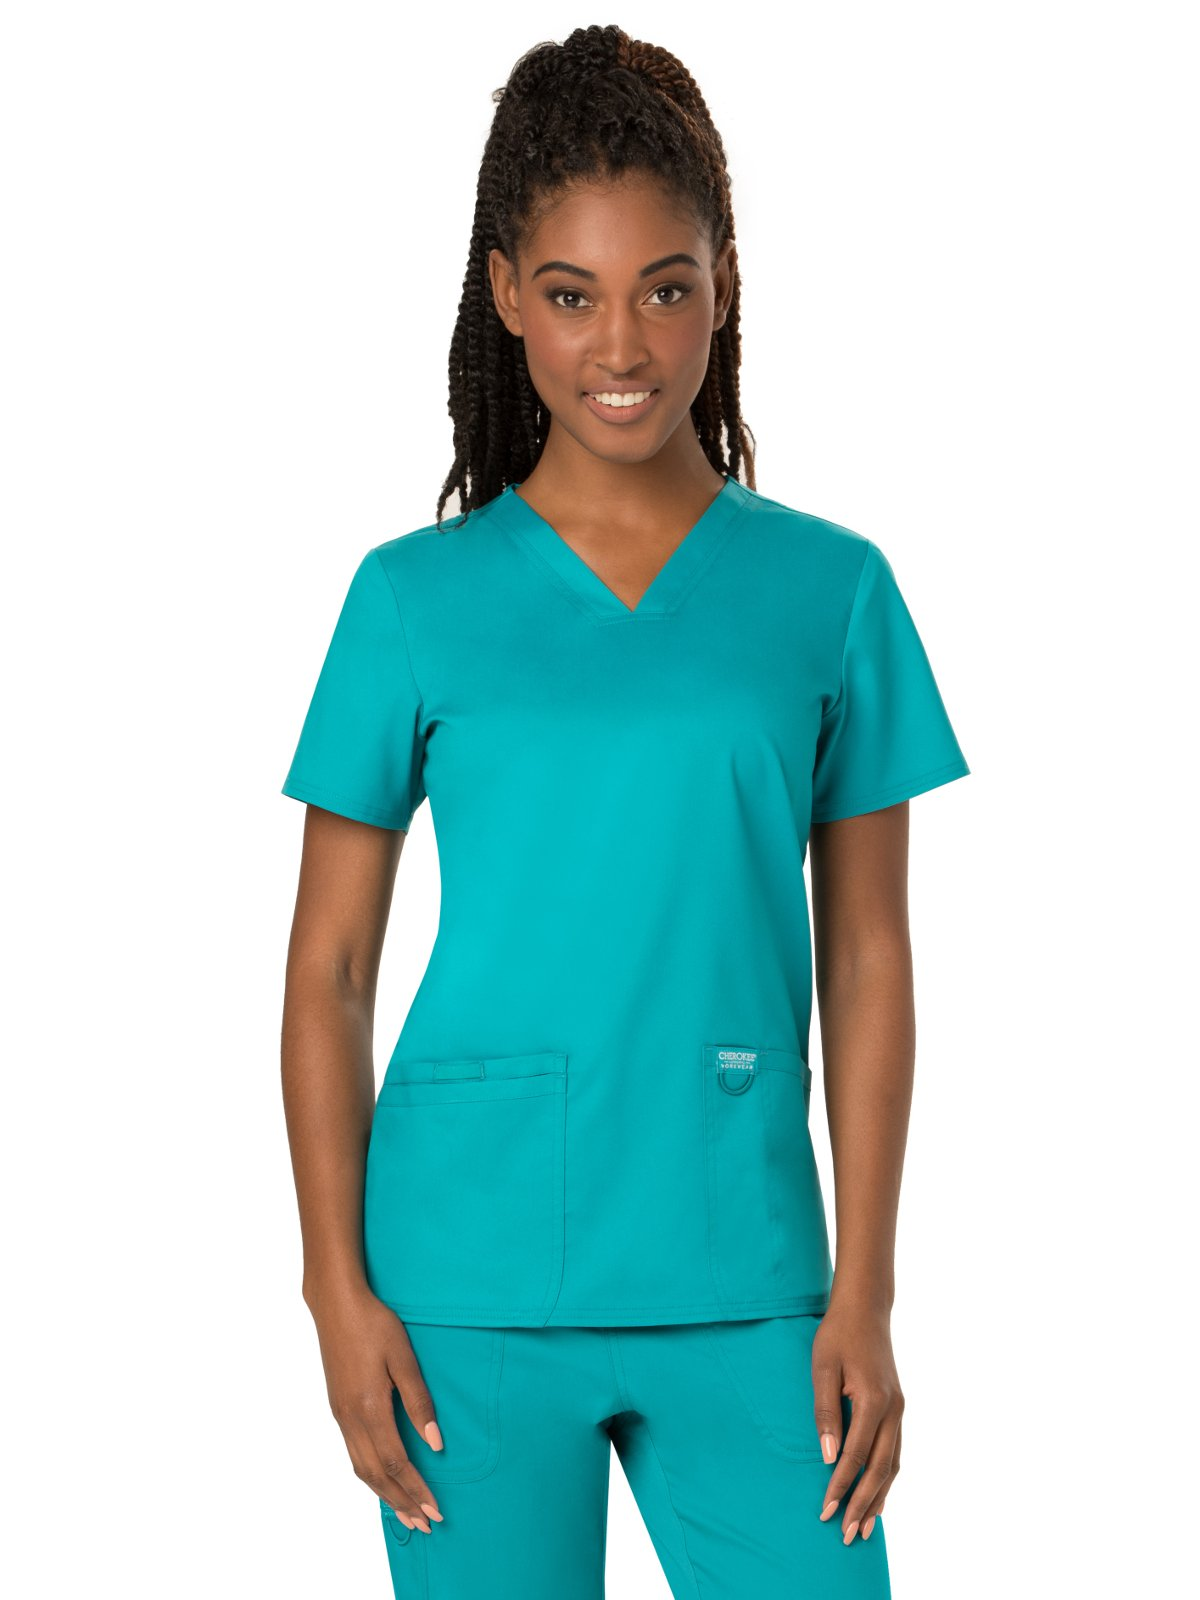 Cherokee Women's V-Neck Top, Teal Blue, XXXX-Large by Cherokee